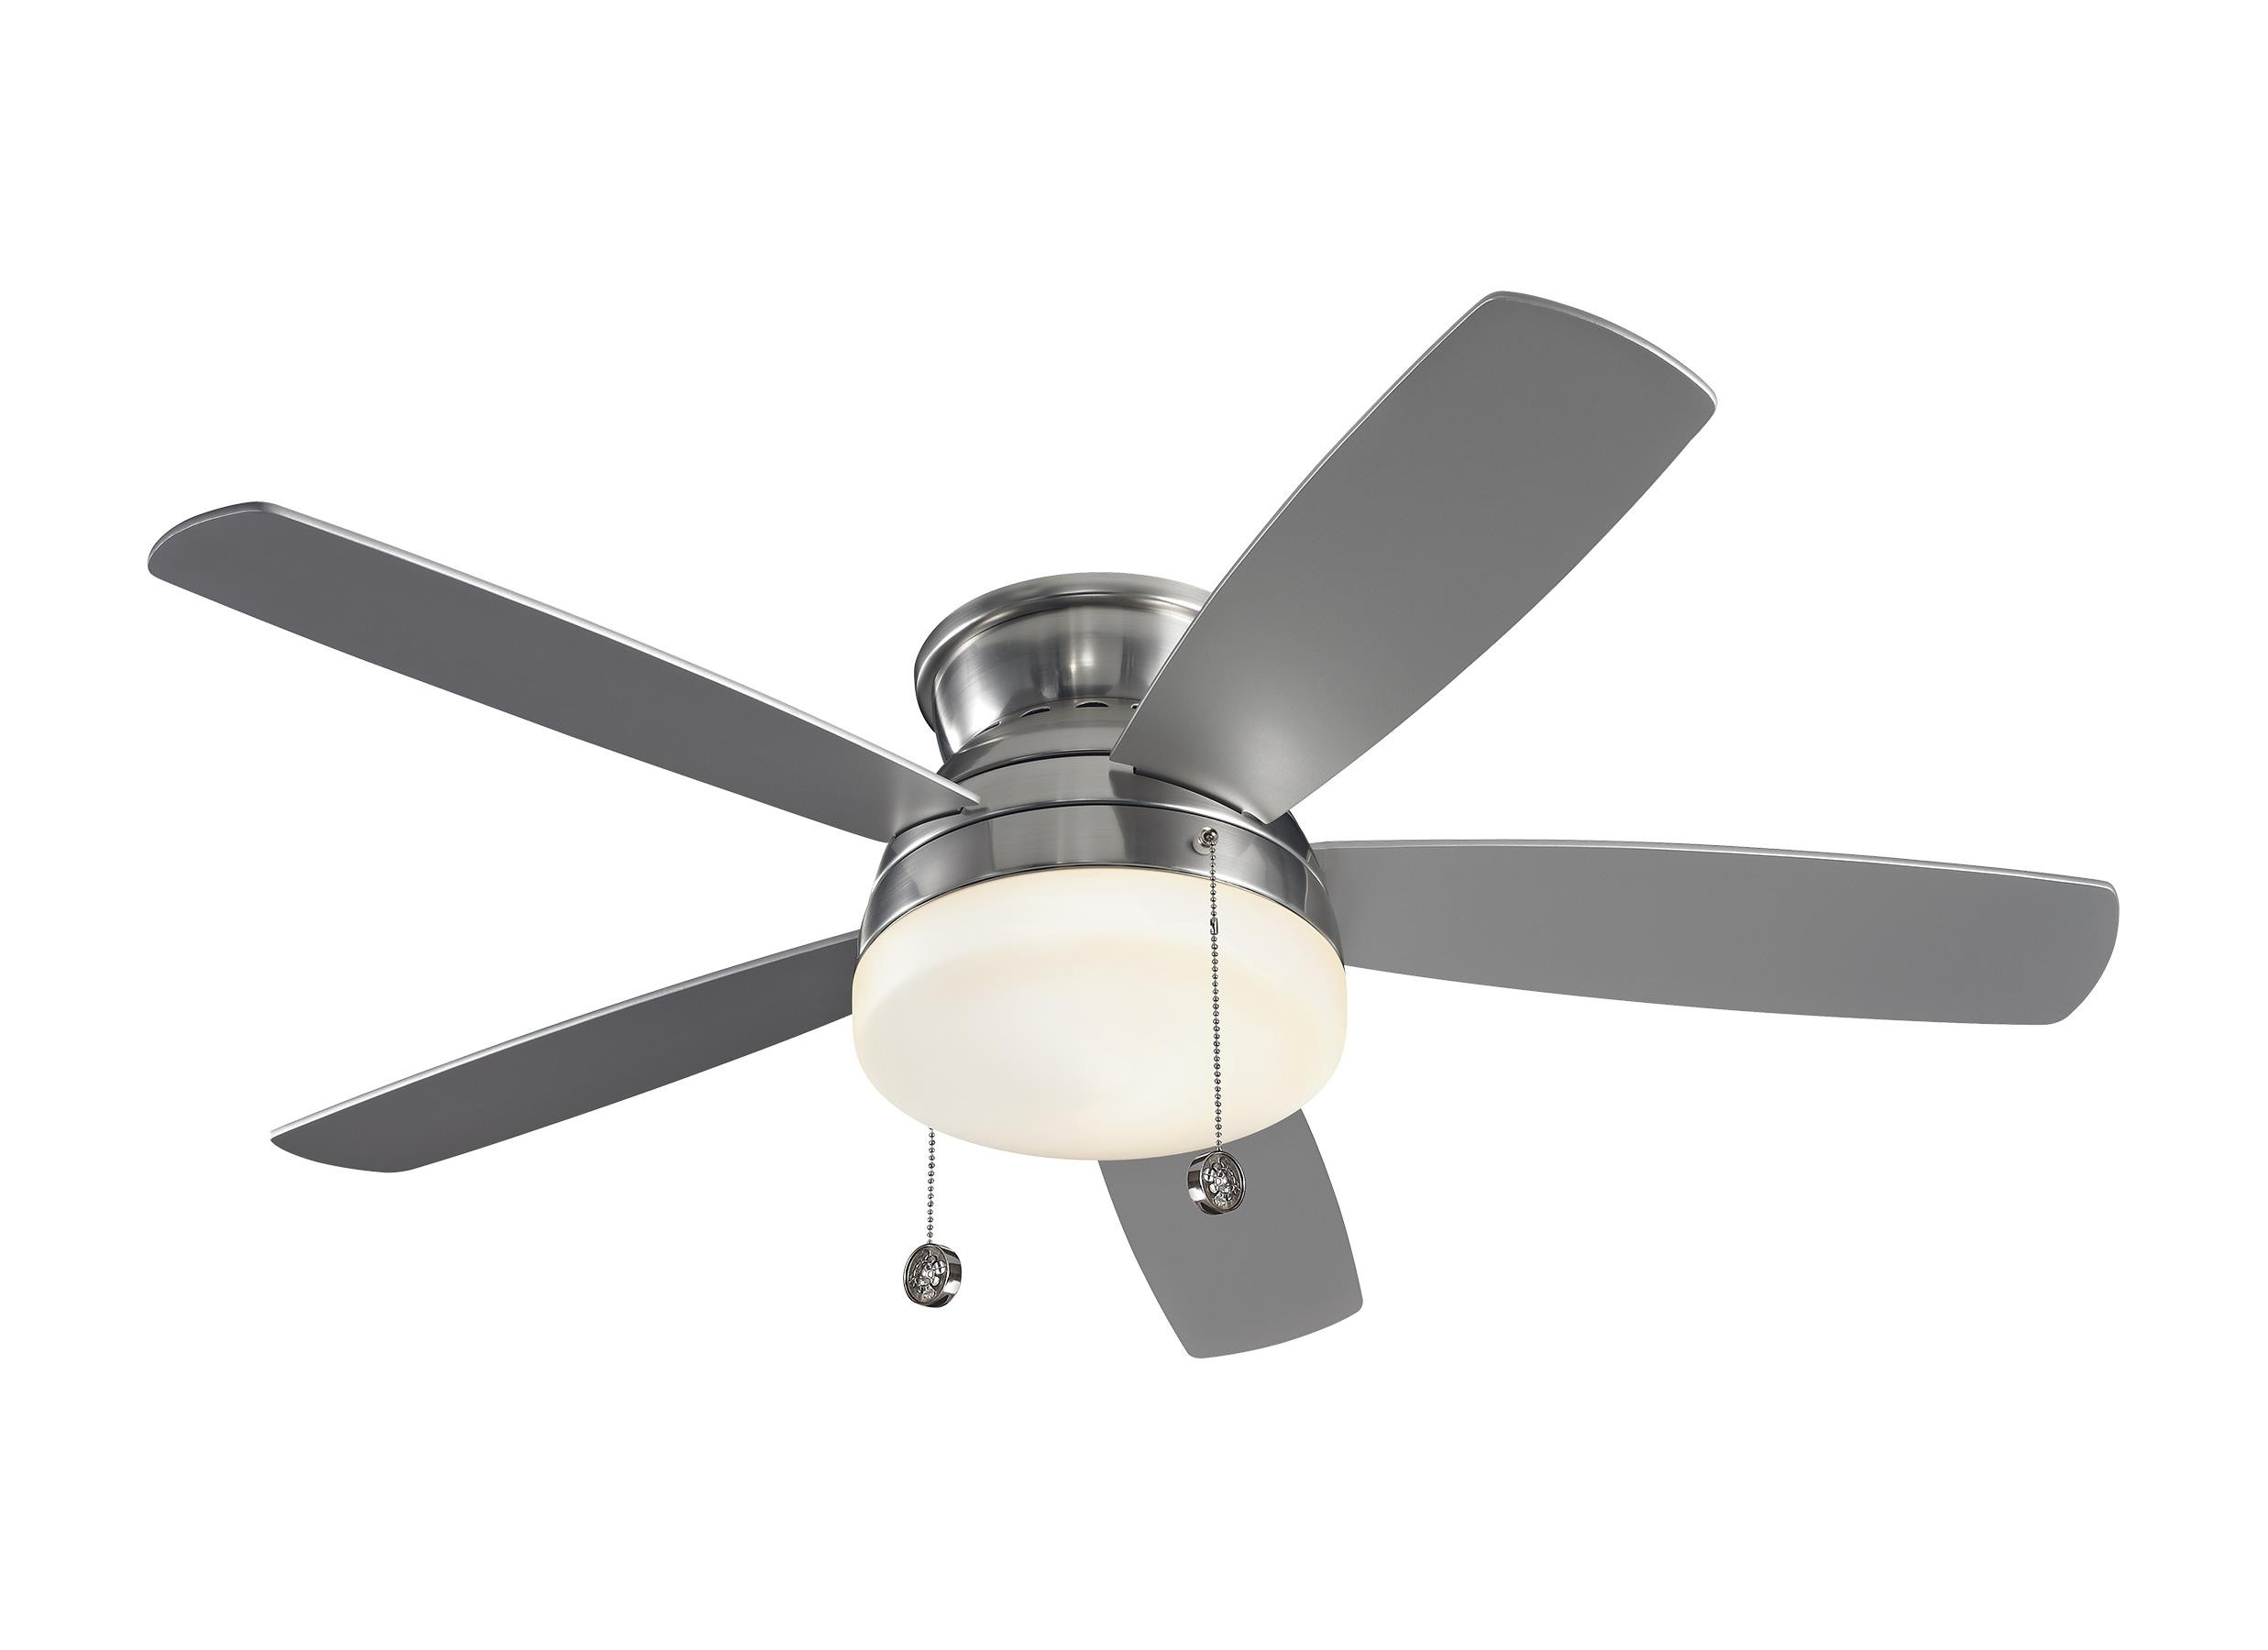 Monte Carlo Fans 5tv52 V1 Traverse 5 Blade Ceiling Fan With Pull Chain Control And Includes Light Kit 52 Inches Wide By 12 Inches High